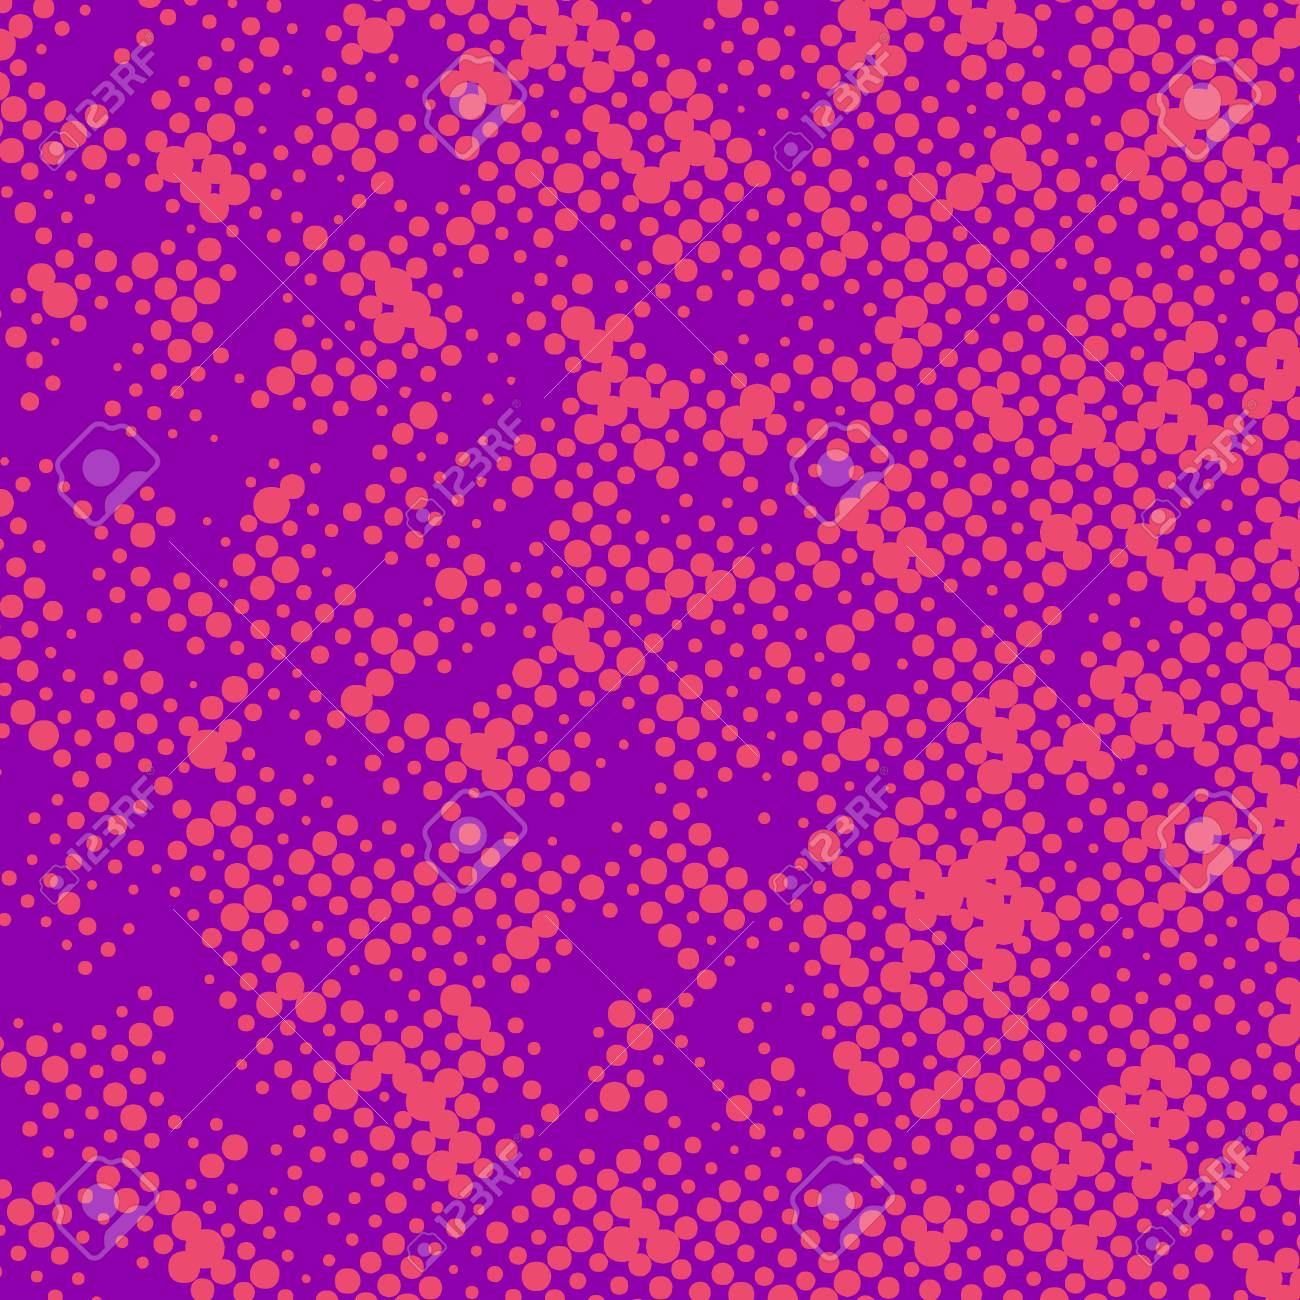 Bright Pink Retro Polka Dot Comic Book Page Background Pattern